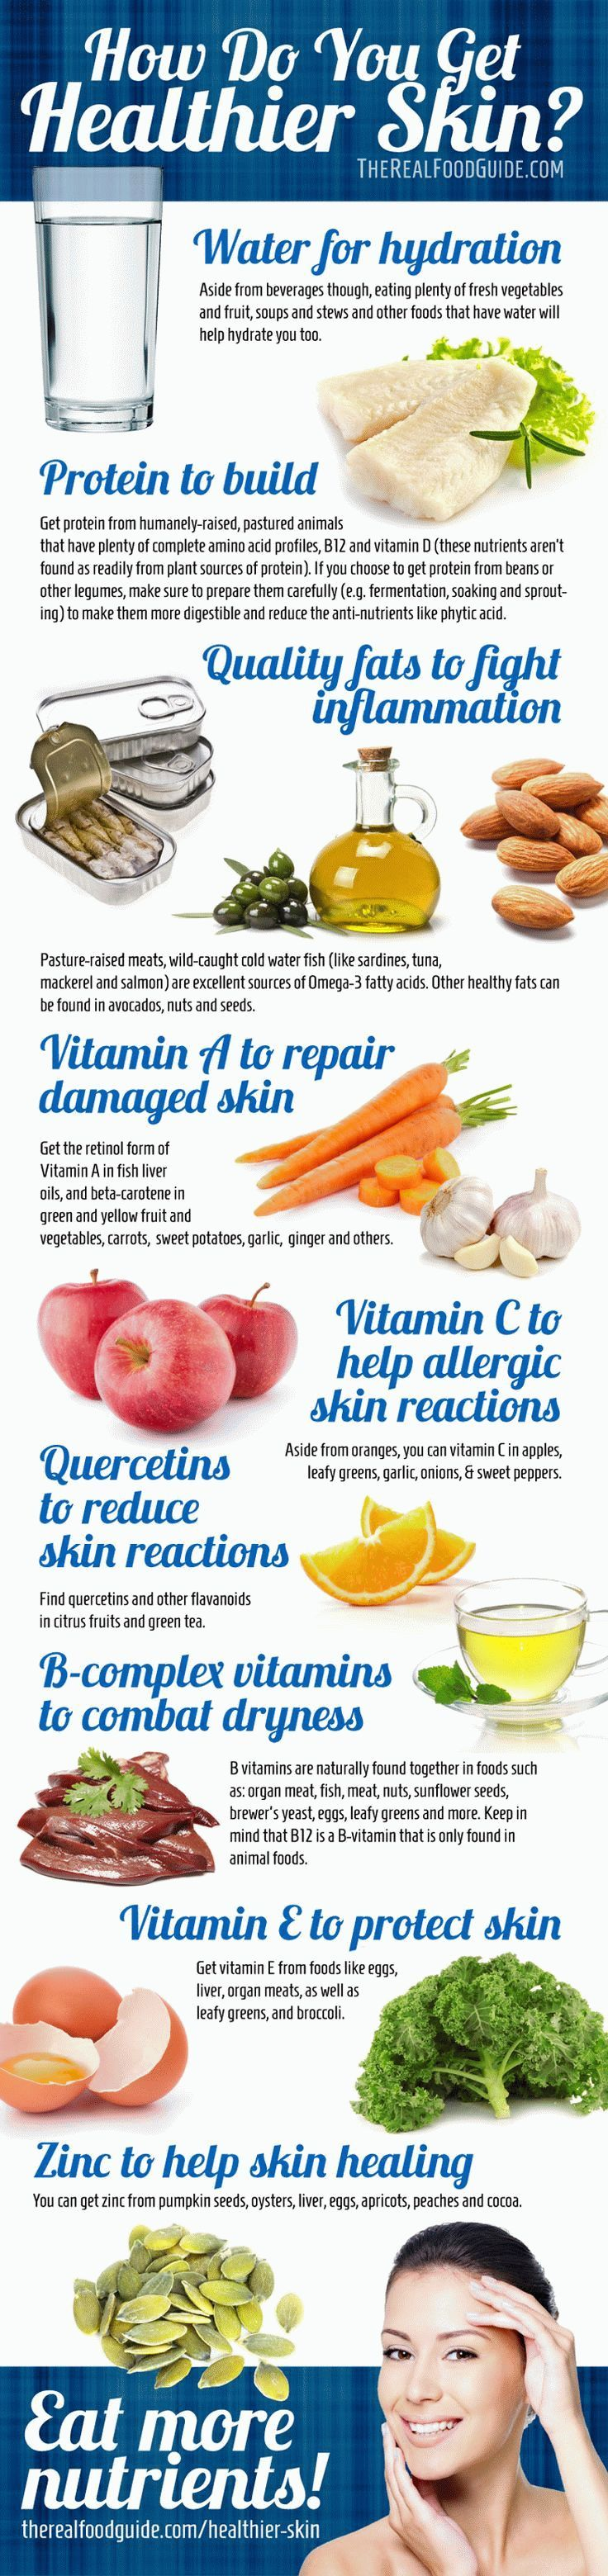 94 best foods for healthy skin images on pinterest healthy eating 15 skin care tips and tricks you didnt know you had to follow forumfinder Images